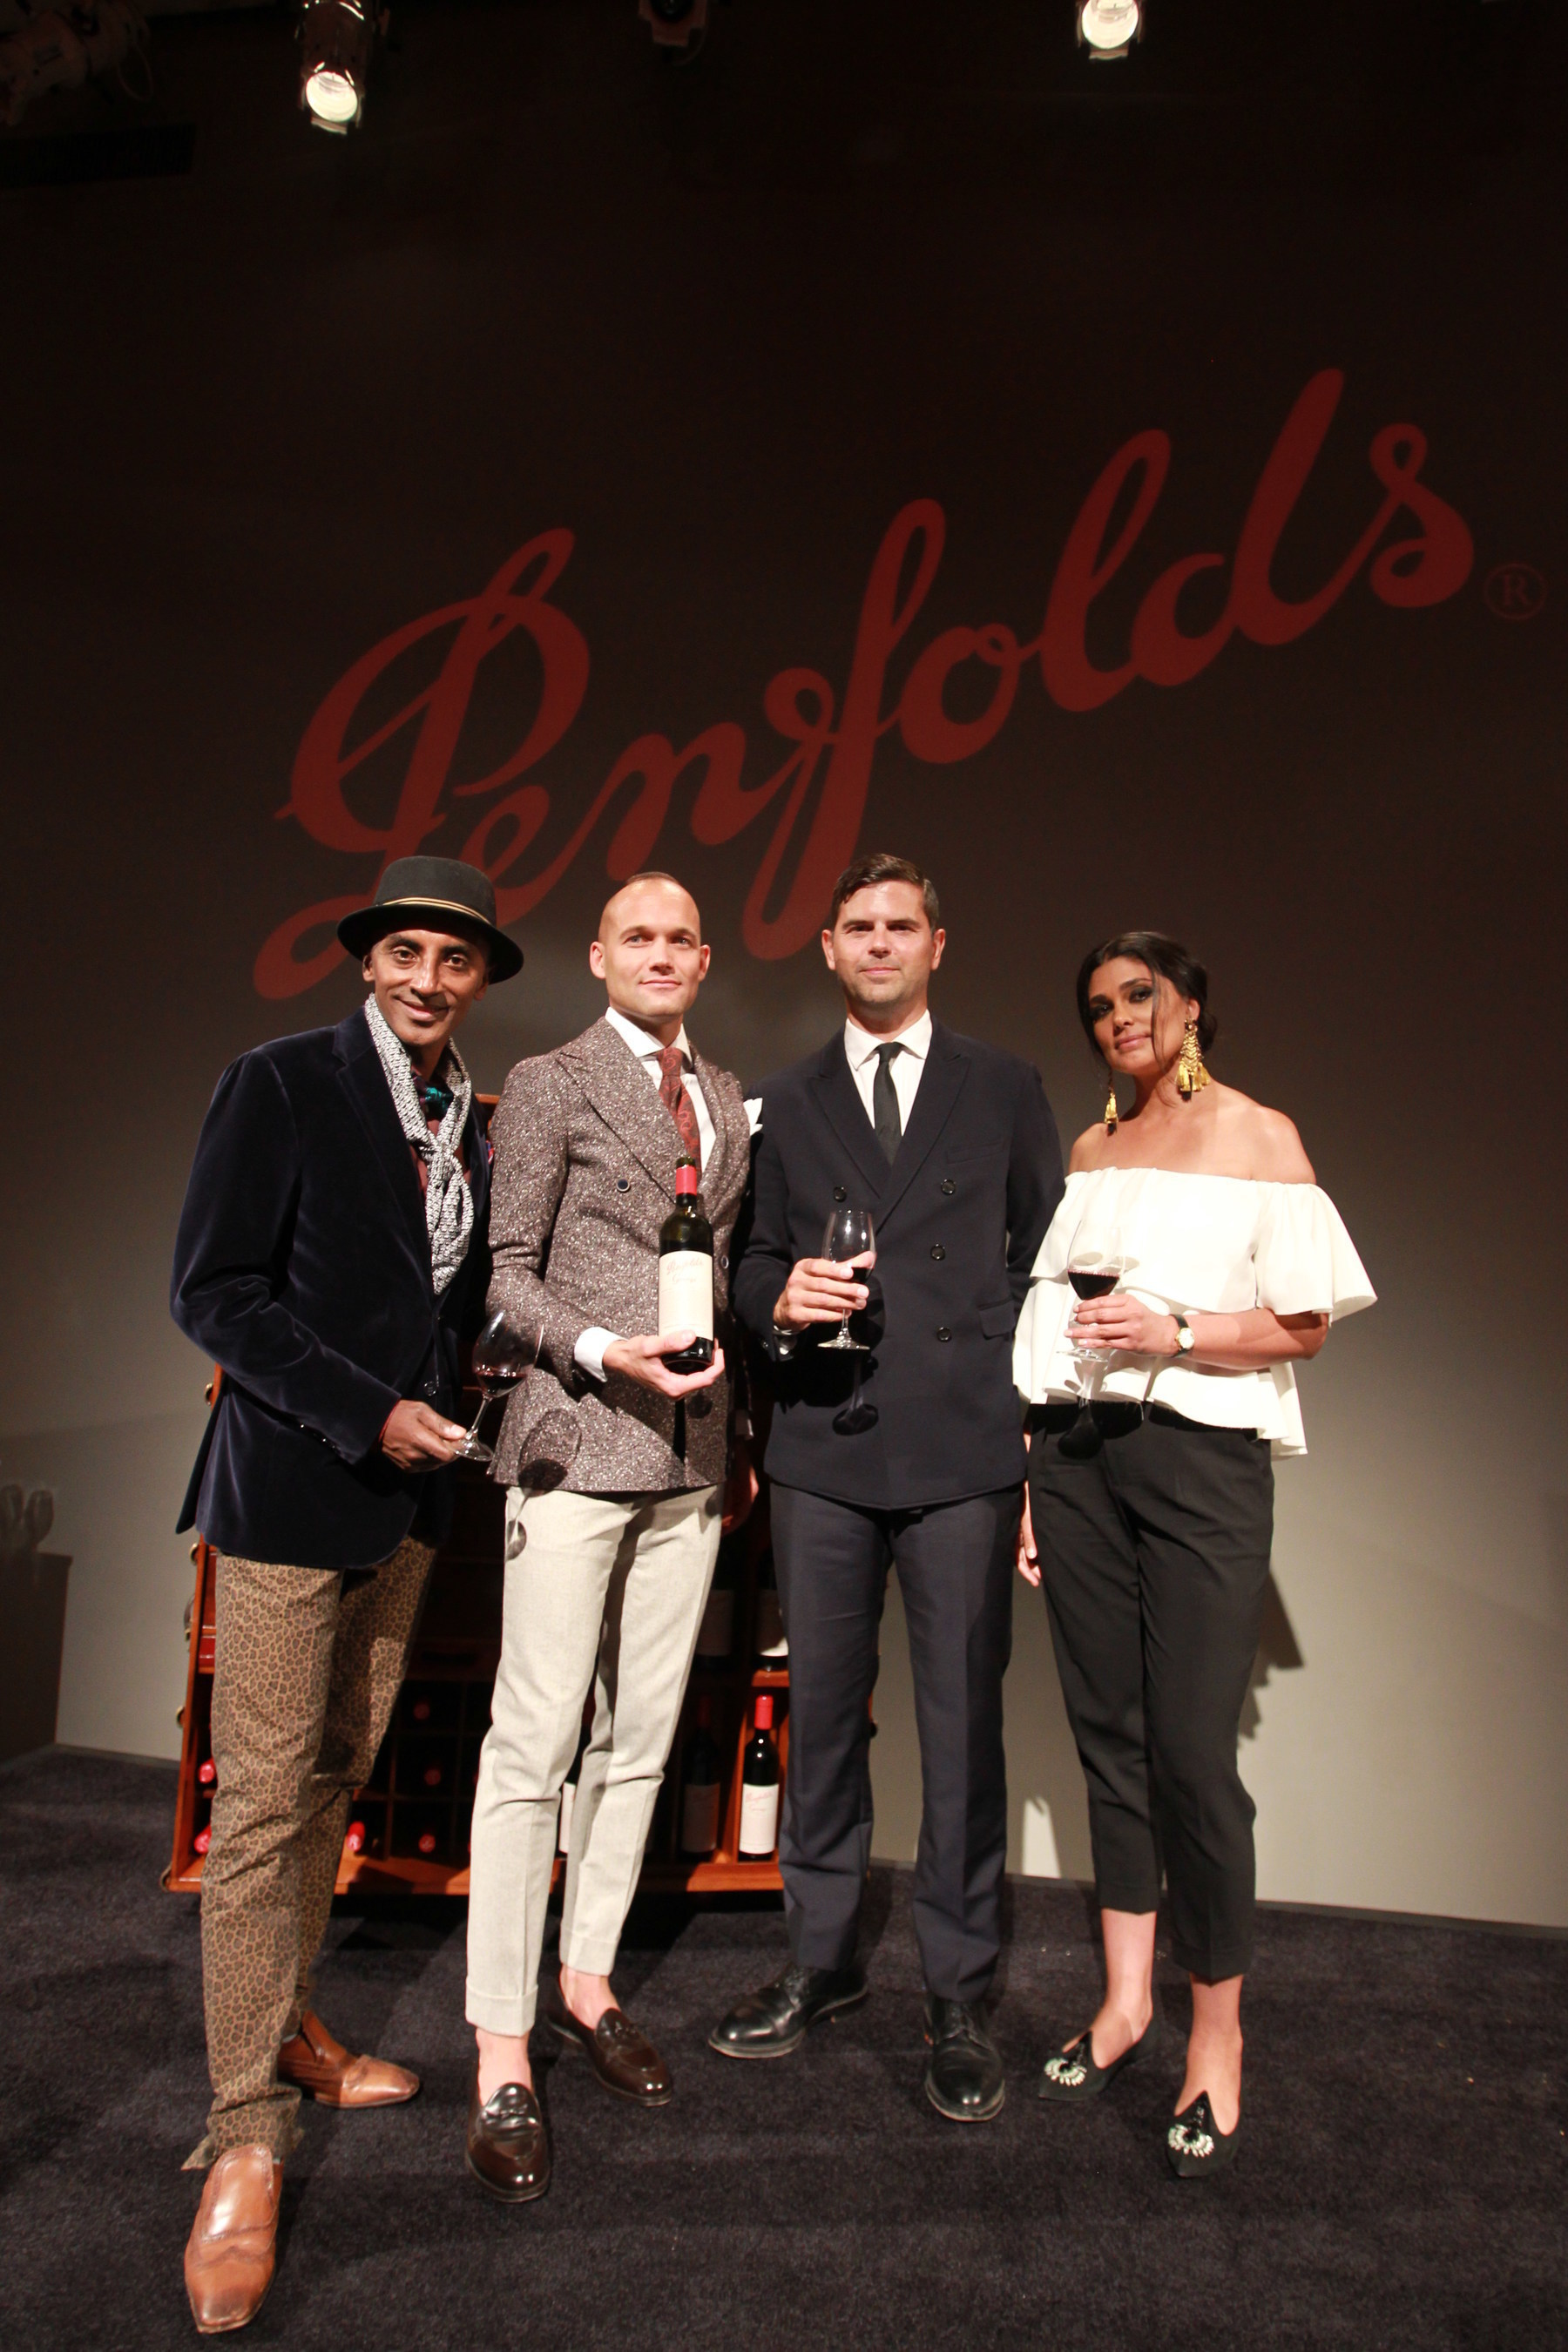 Kyle Ridington from Piora Restaurant in New York City, second from left, was crowned Penfolds & GQ Magazine's Best Dressed Sommelier by celebrity chef and style guru Marcus Samuelsson, GQ Executive Stylist Brett Fahlgren, and designer Rachel Roy. Ridington celebrated his win by opening a bottle of the acclaimed Penfolds 2011 Grange at The Penfolds House inside Stephan Weiss Studios in New York City. (Photo by Donald Traill/Invision for Penfolds Wine/AP Images)